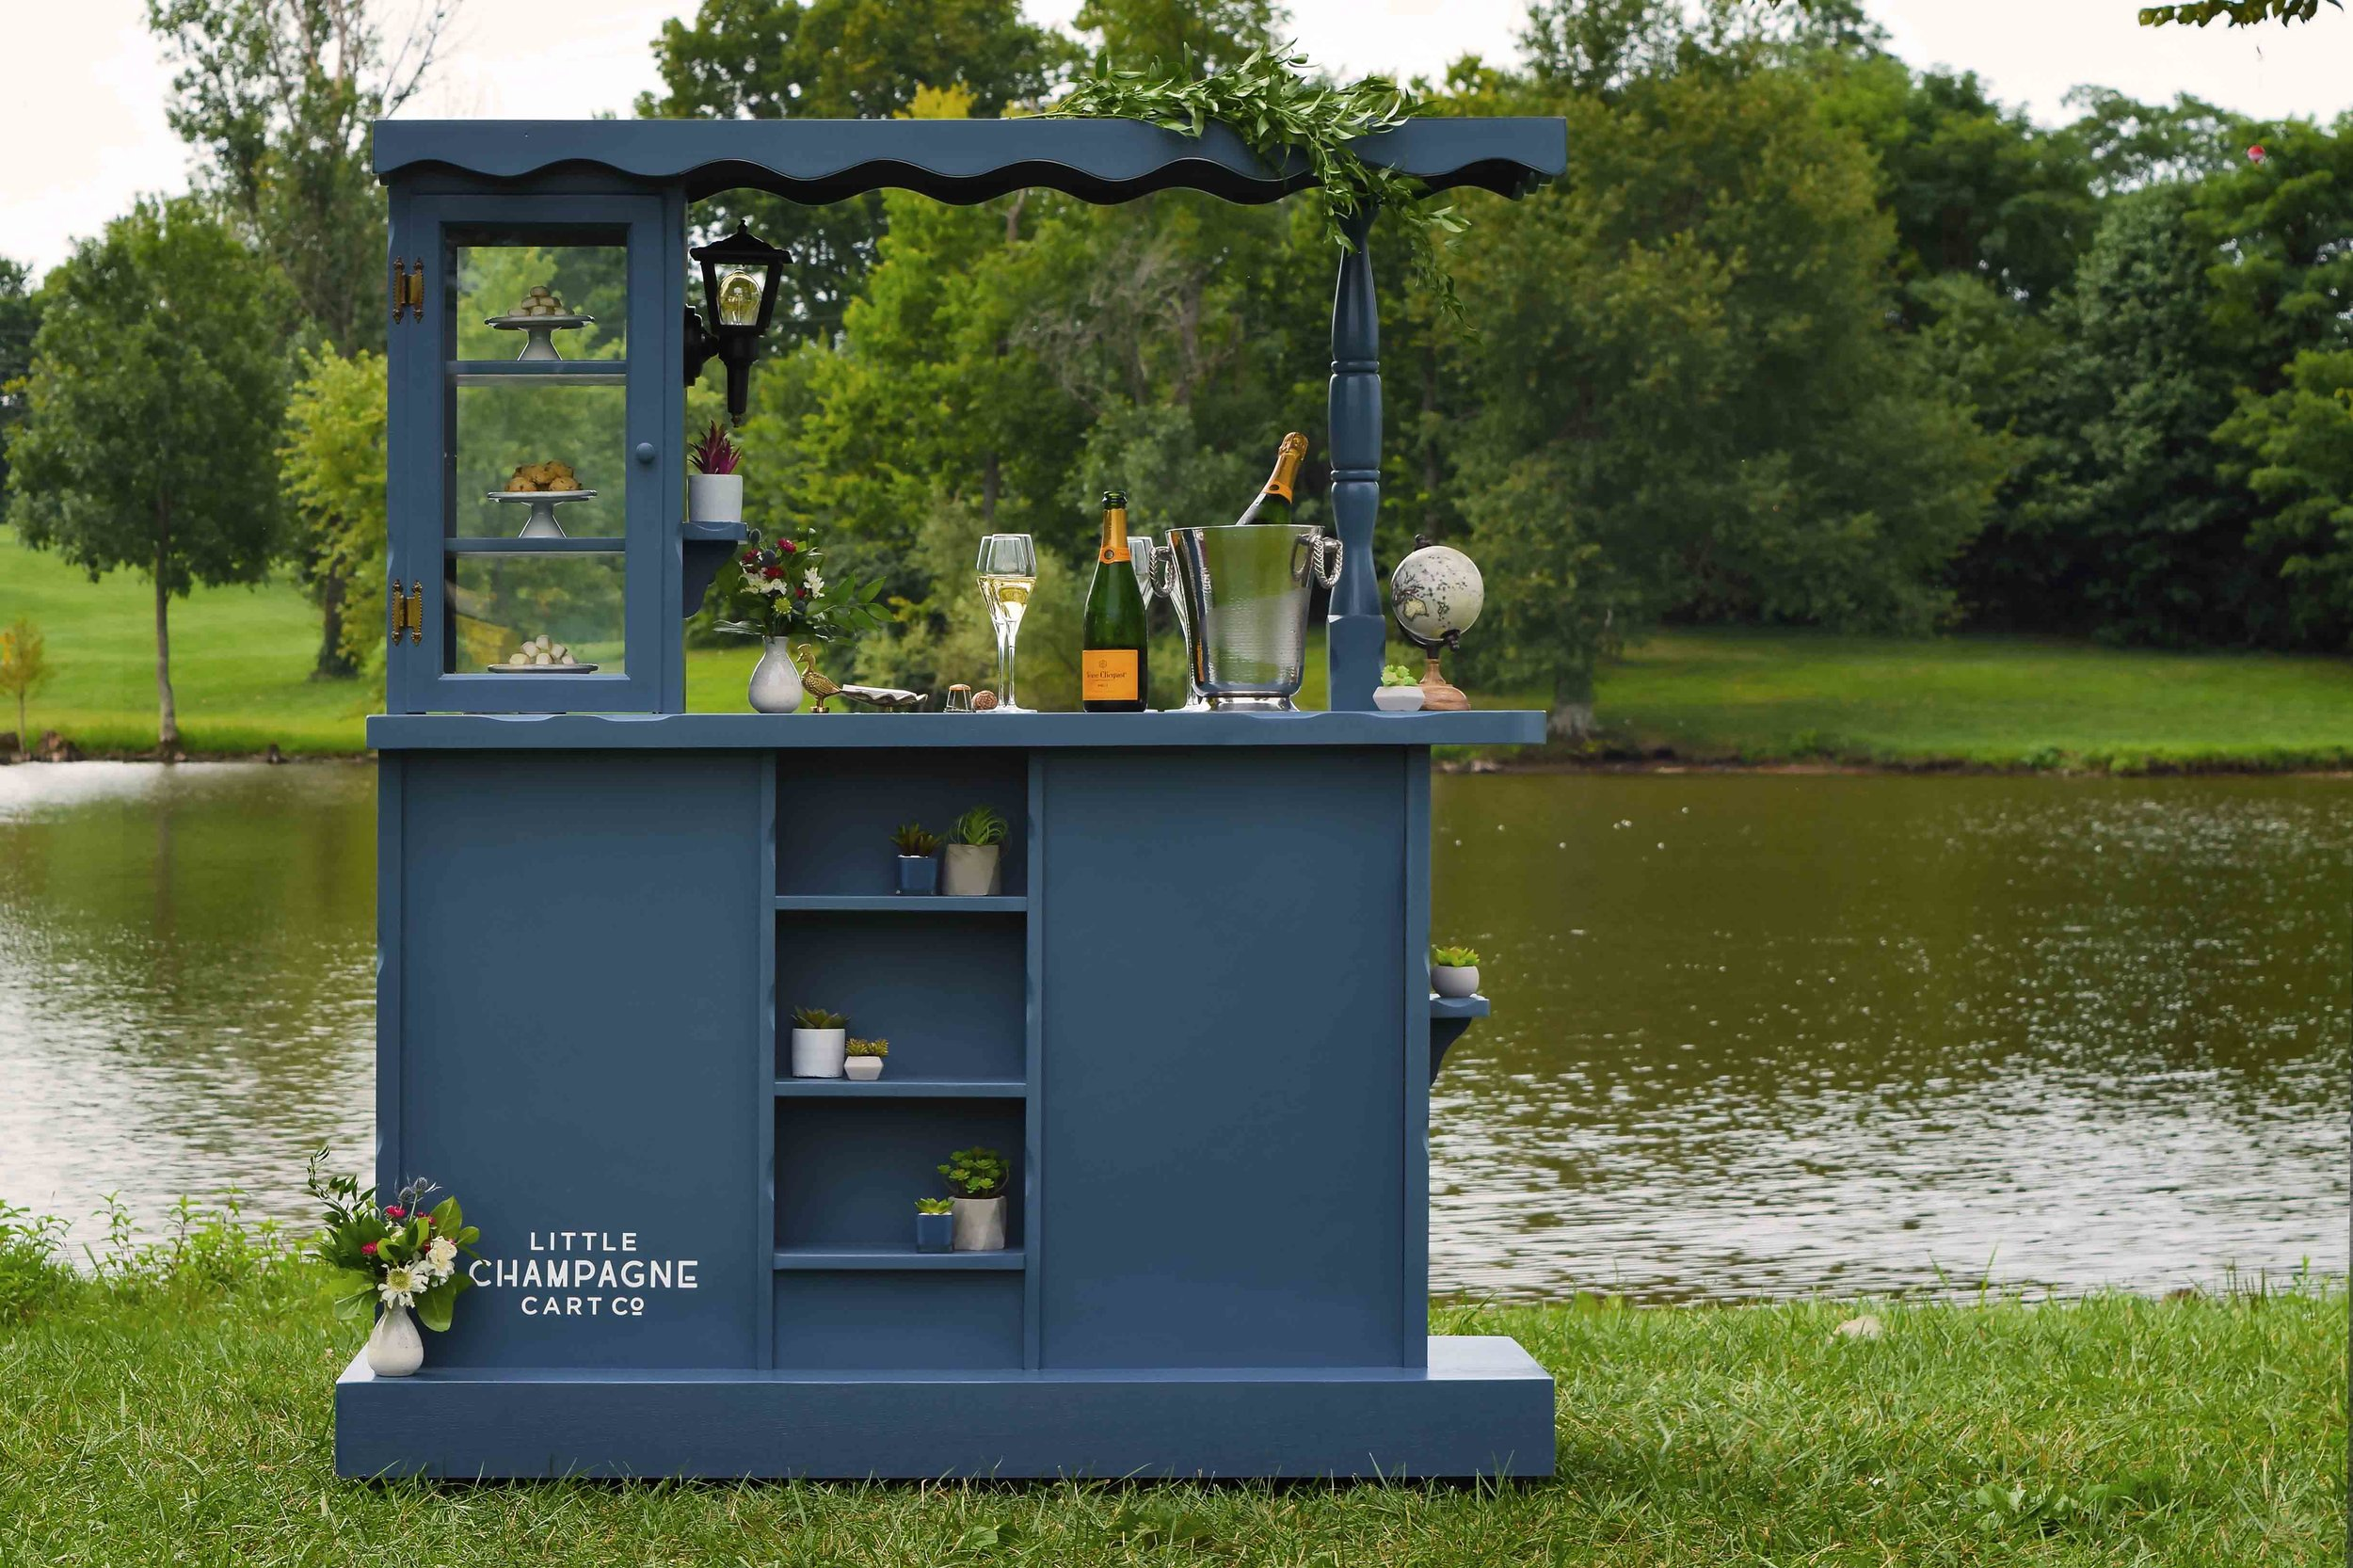 Little_Champagne_Cart_Jacobson_Park_Styled